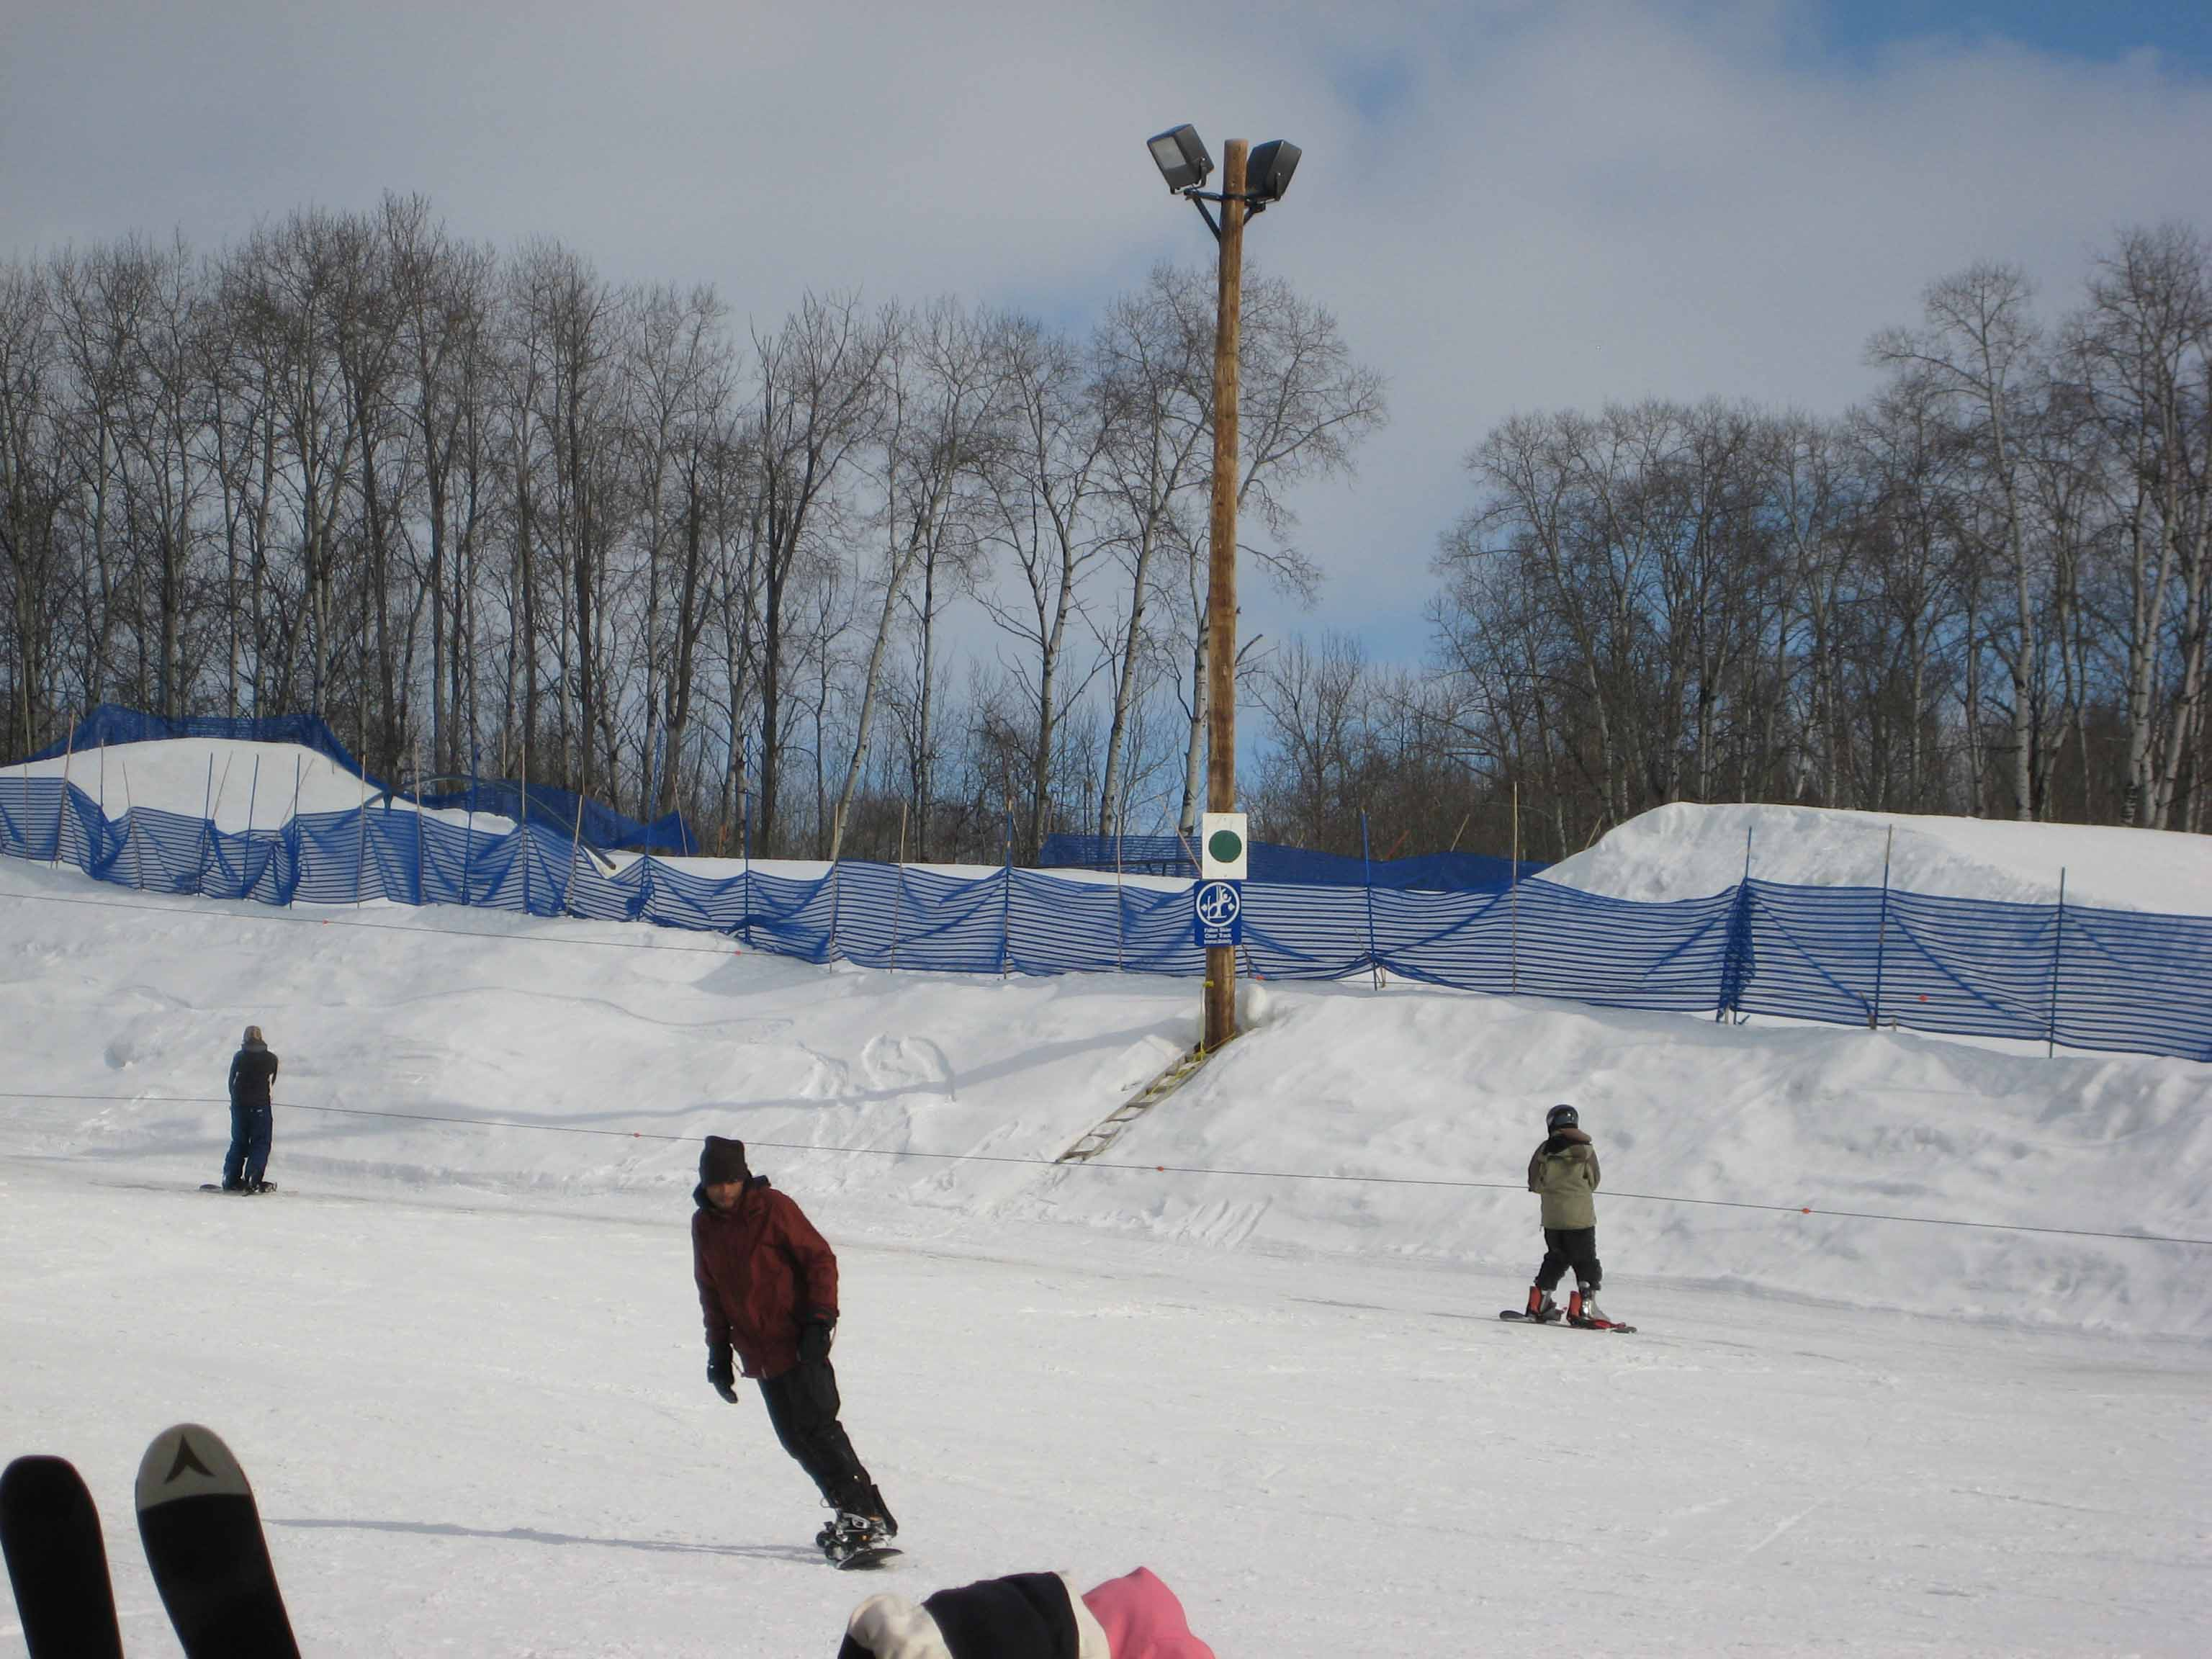 snowboarding in Canada